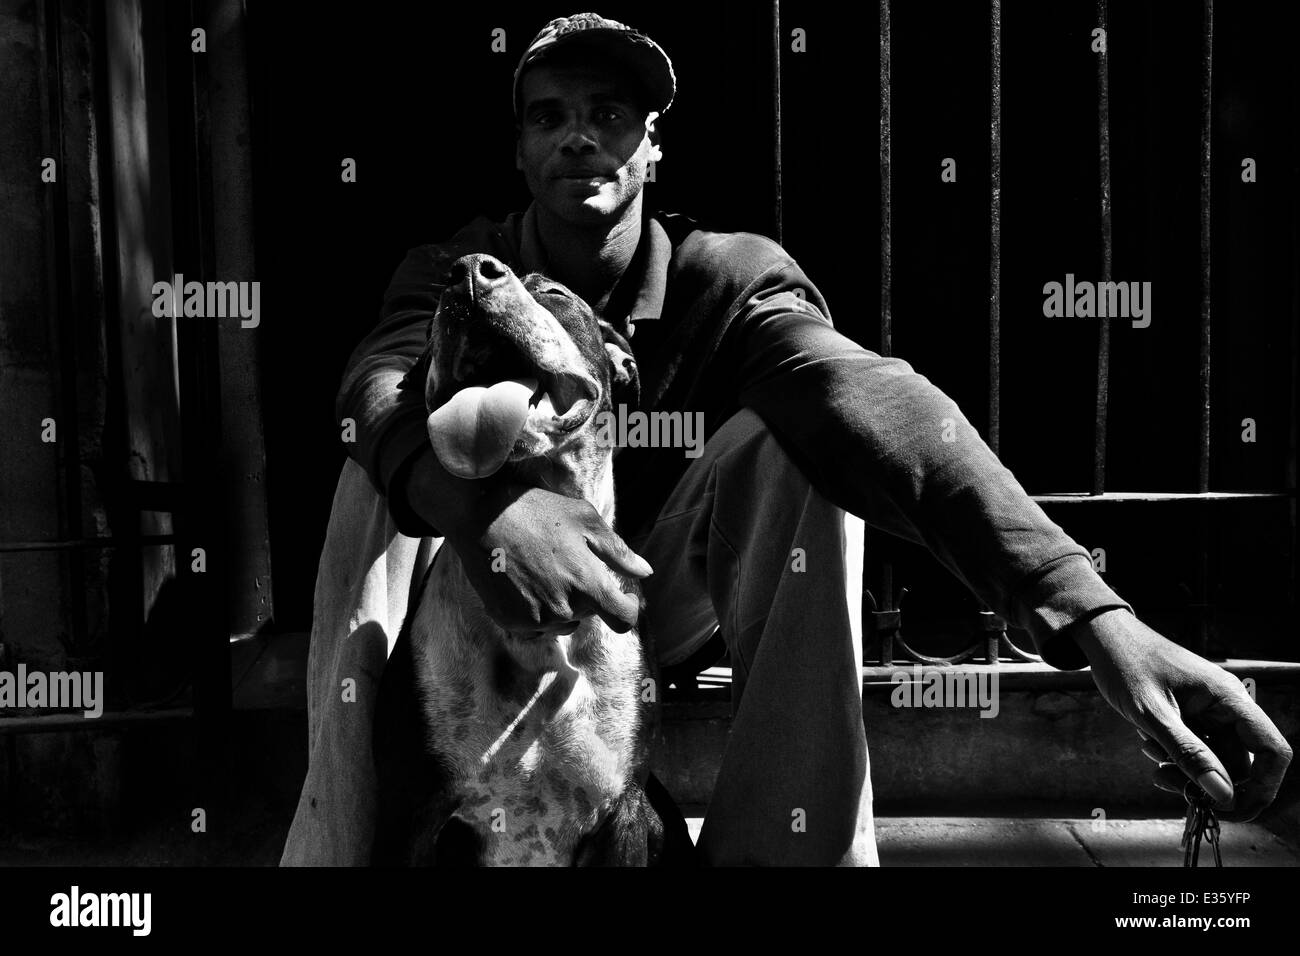 A Cuban man poses for a picture with his amstaff dog during a sunny morning in Havana, Cuba. - Stock Image